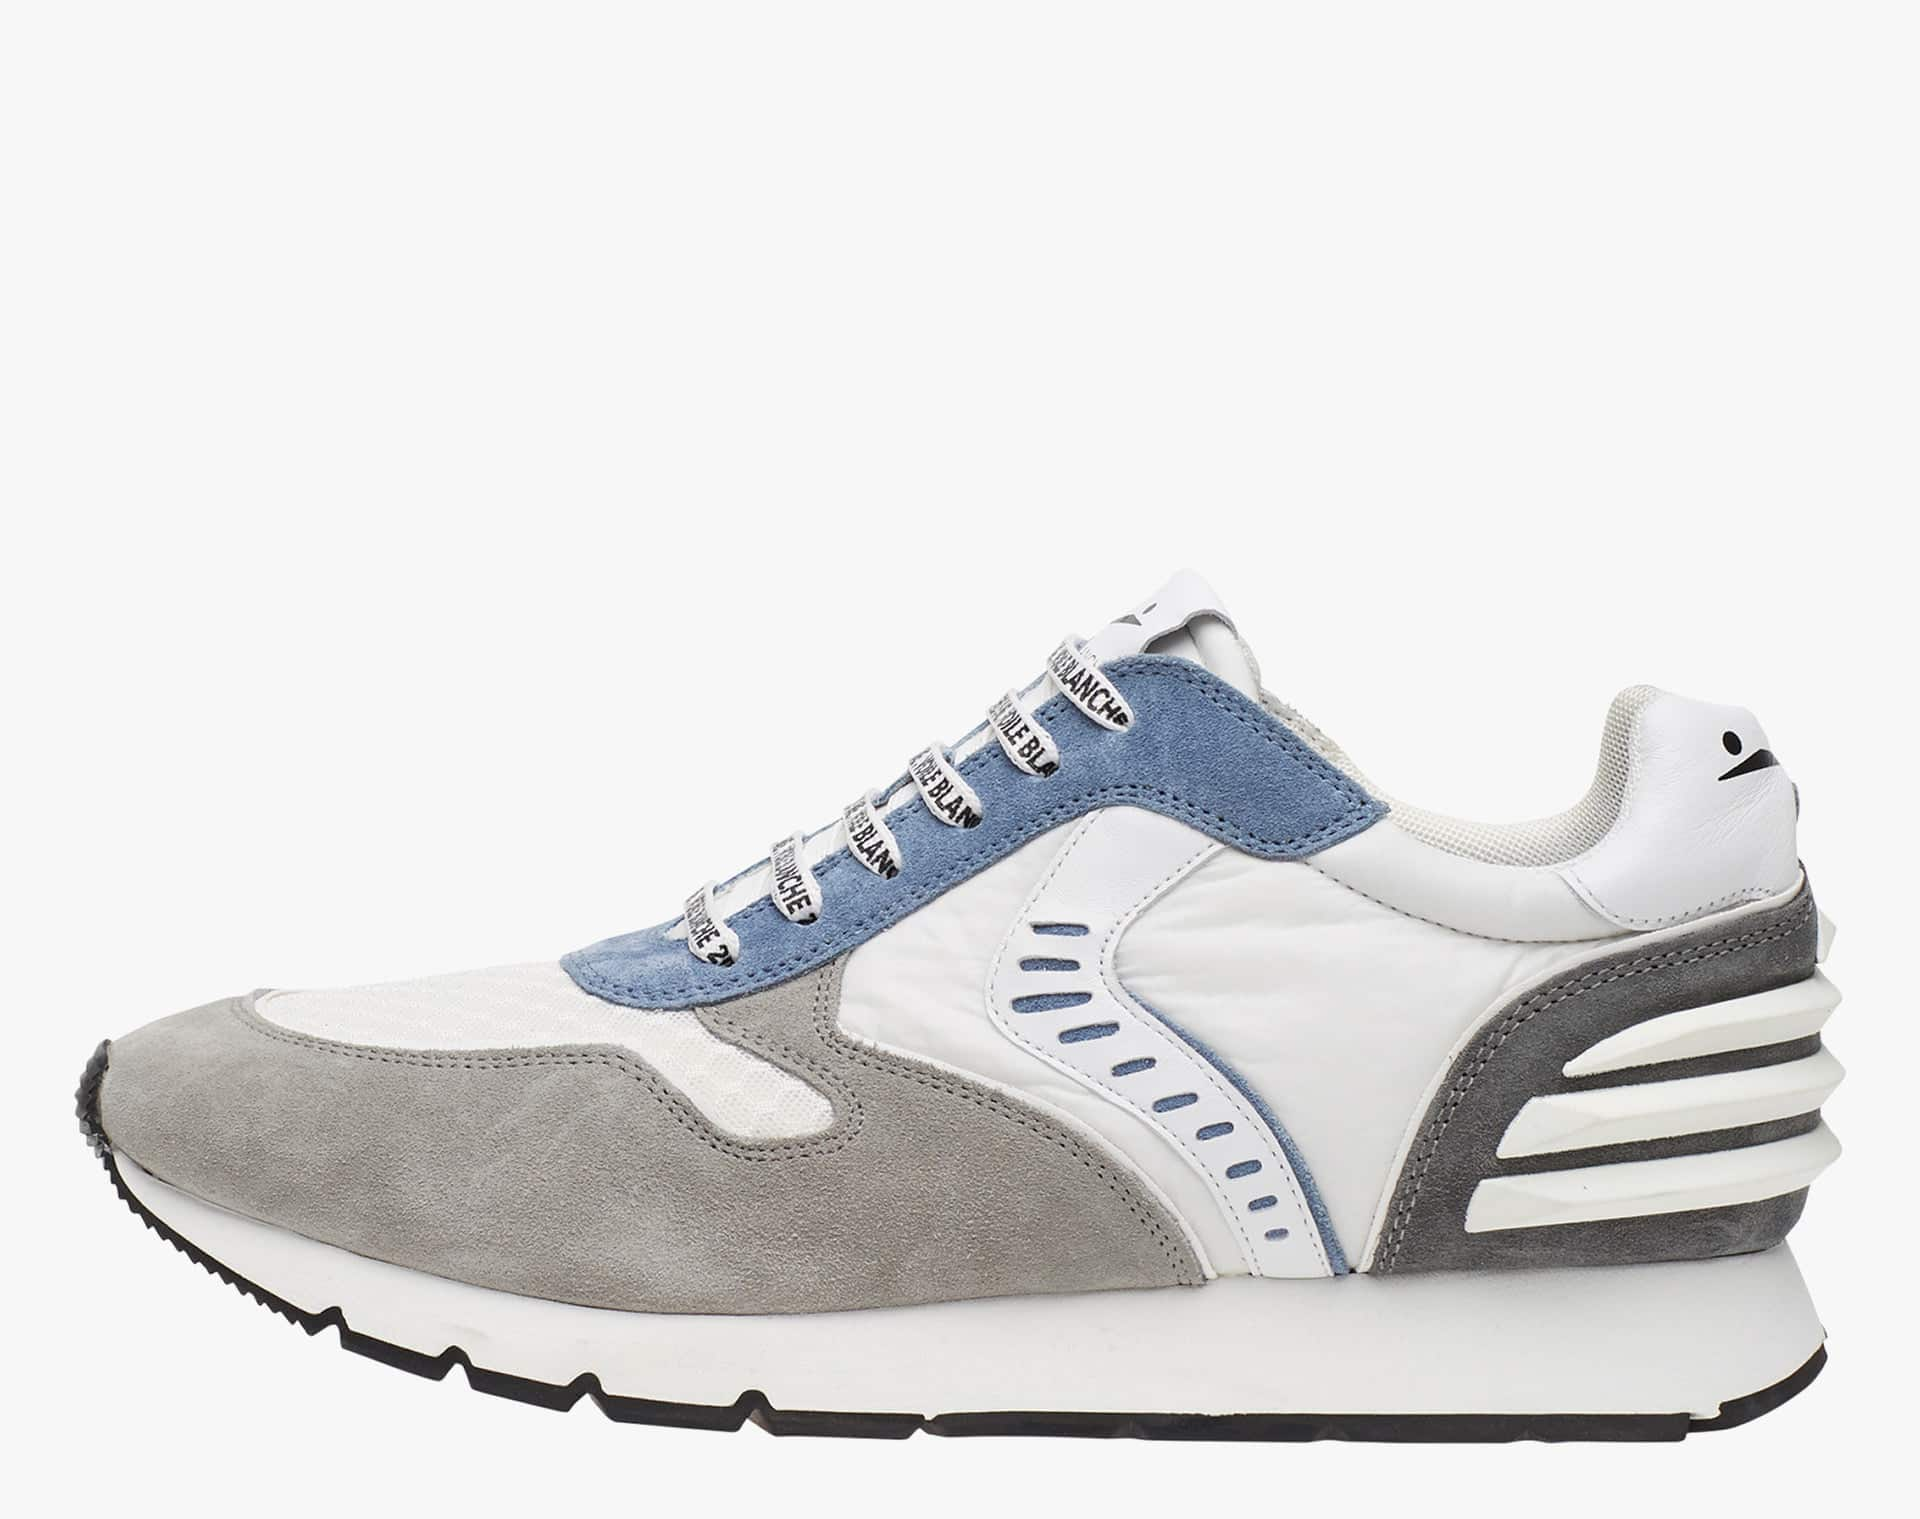 LIAM POWER II - Suede and technical fabric sneakers - Grey/White/Jeans